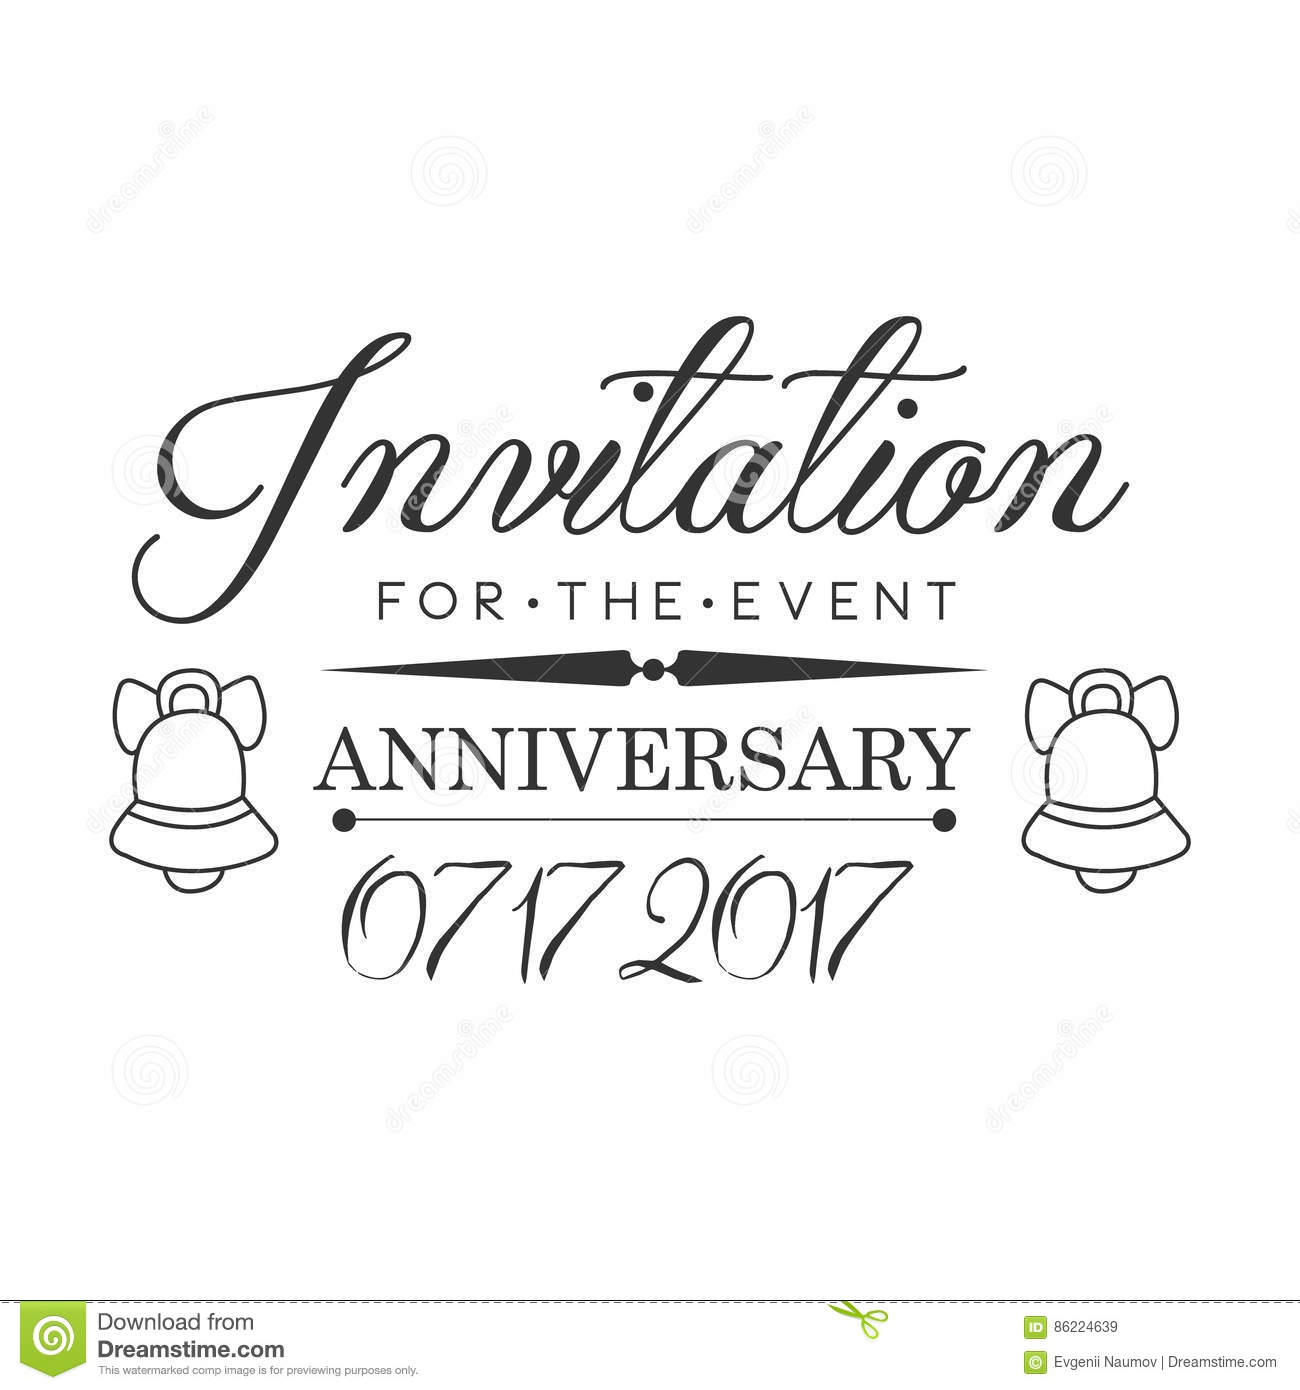 Graduation Anniversary Party Black And White Invitation Card – Black and White Invitation Cards